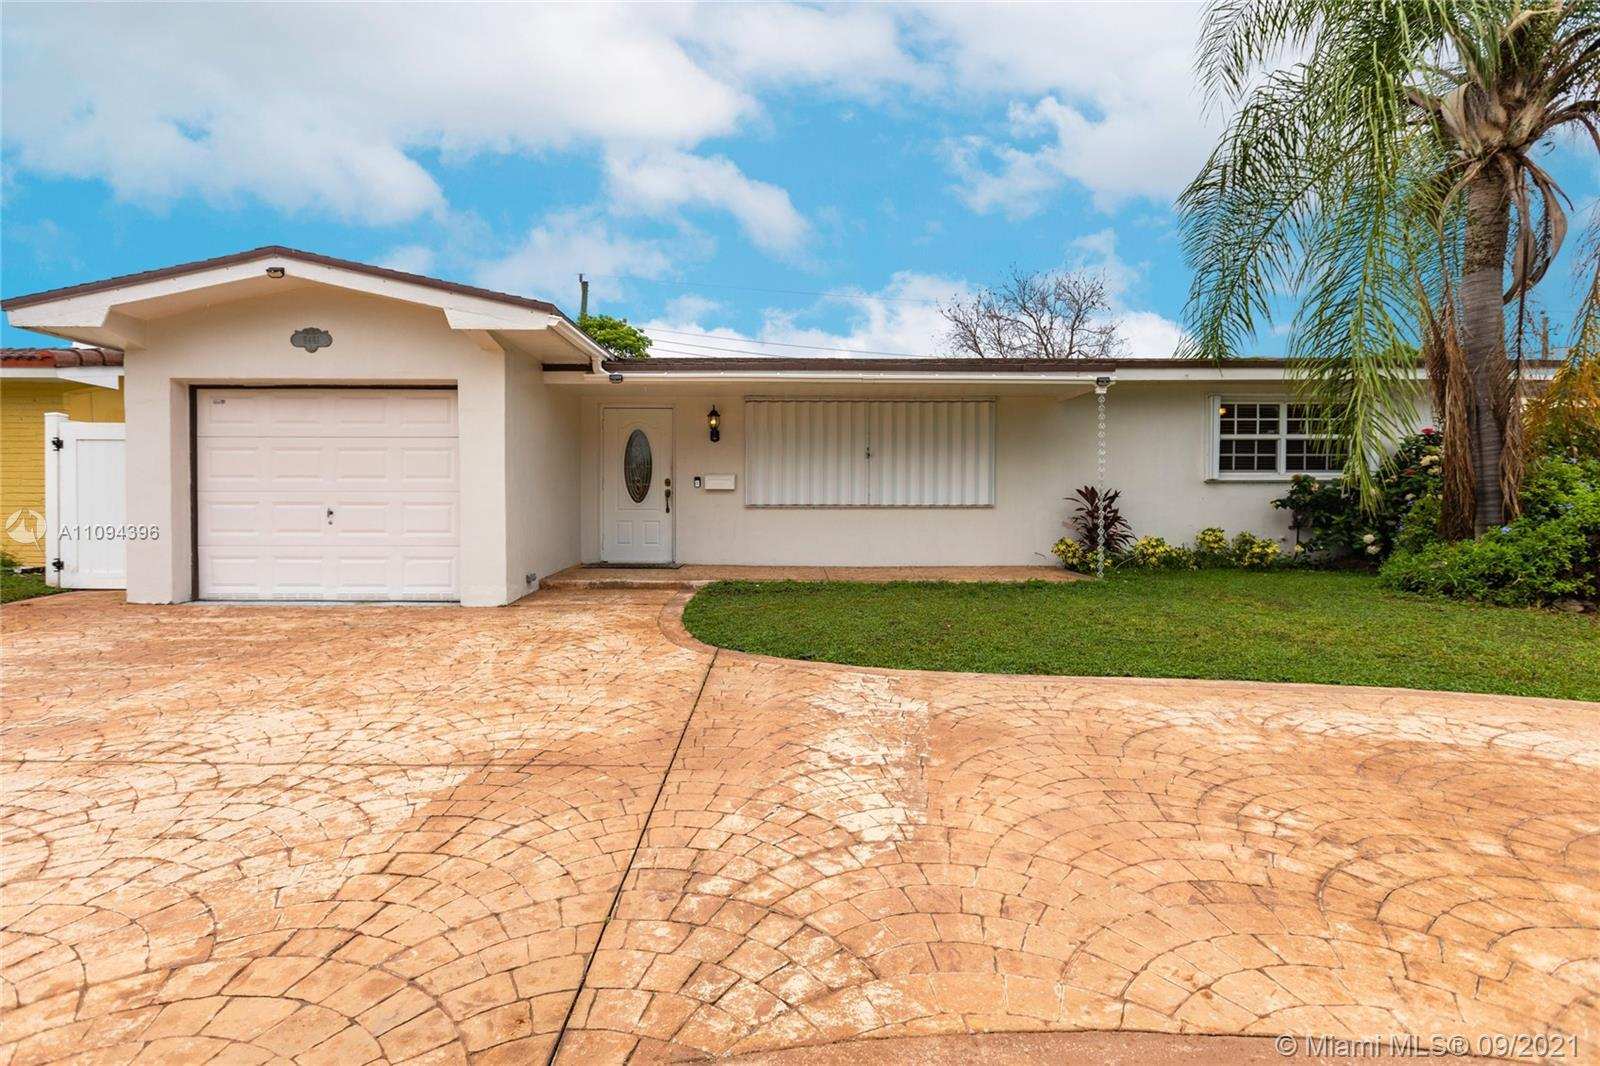 Boulevard Heights - 8481 NW 11th Ct, Pembroke Pines, FL 33024